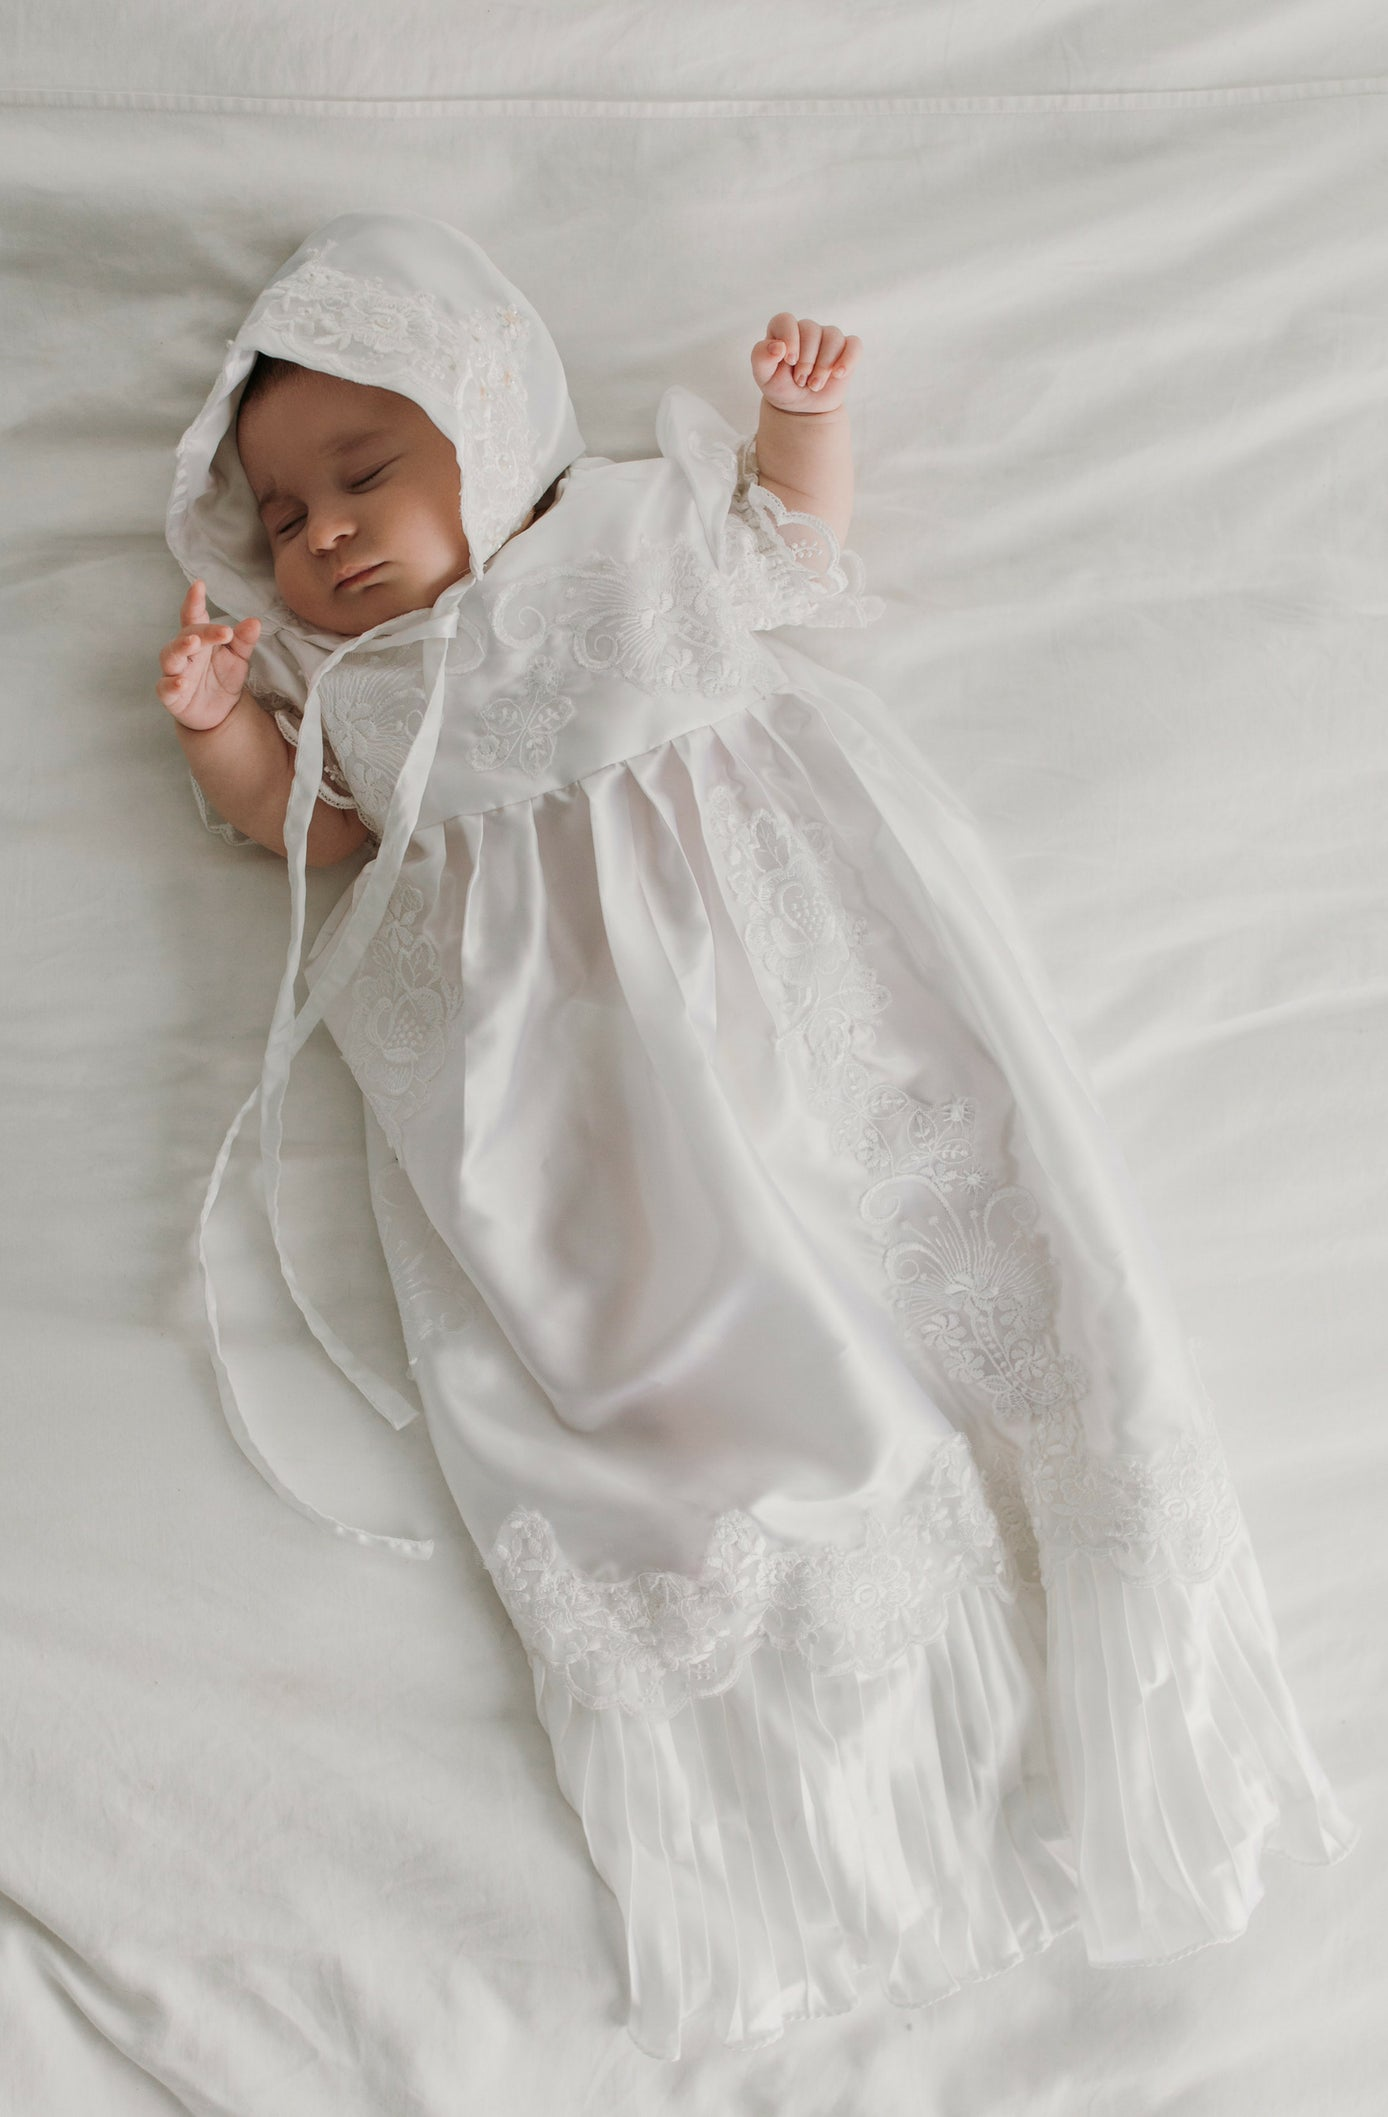 Made from Wedding Dress  or CUSTOM from Your Fabric newborn Romper Baptism  Christening Gown Outfit